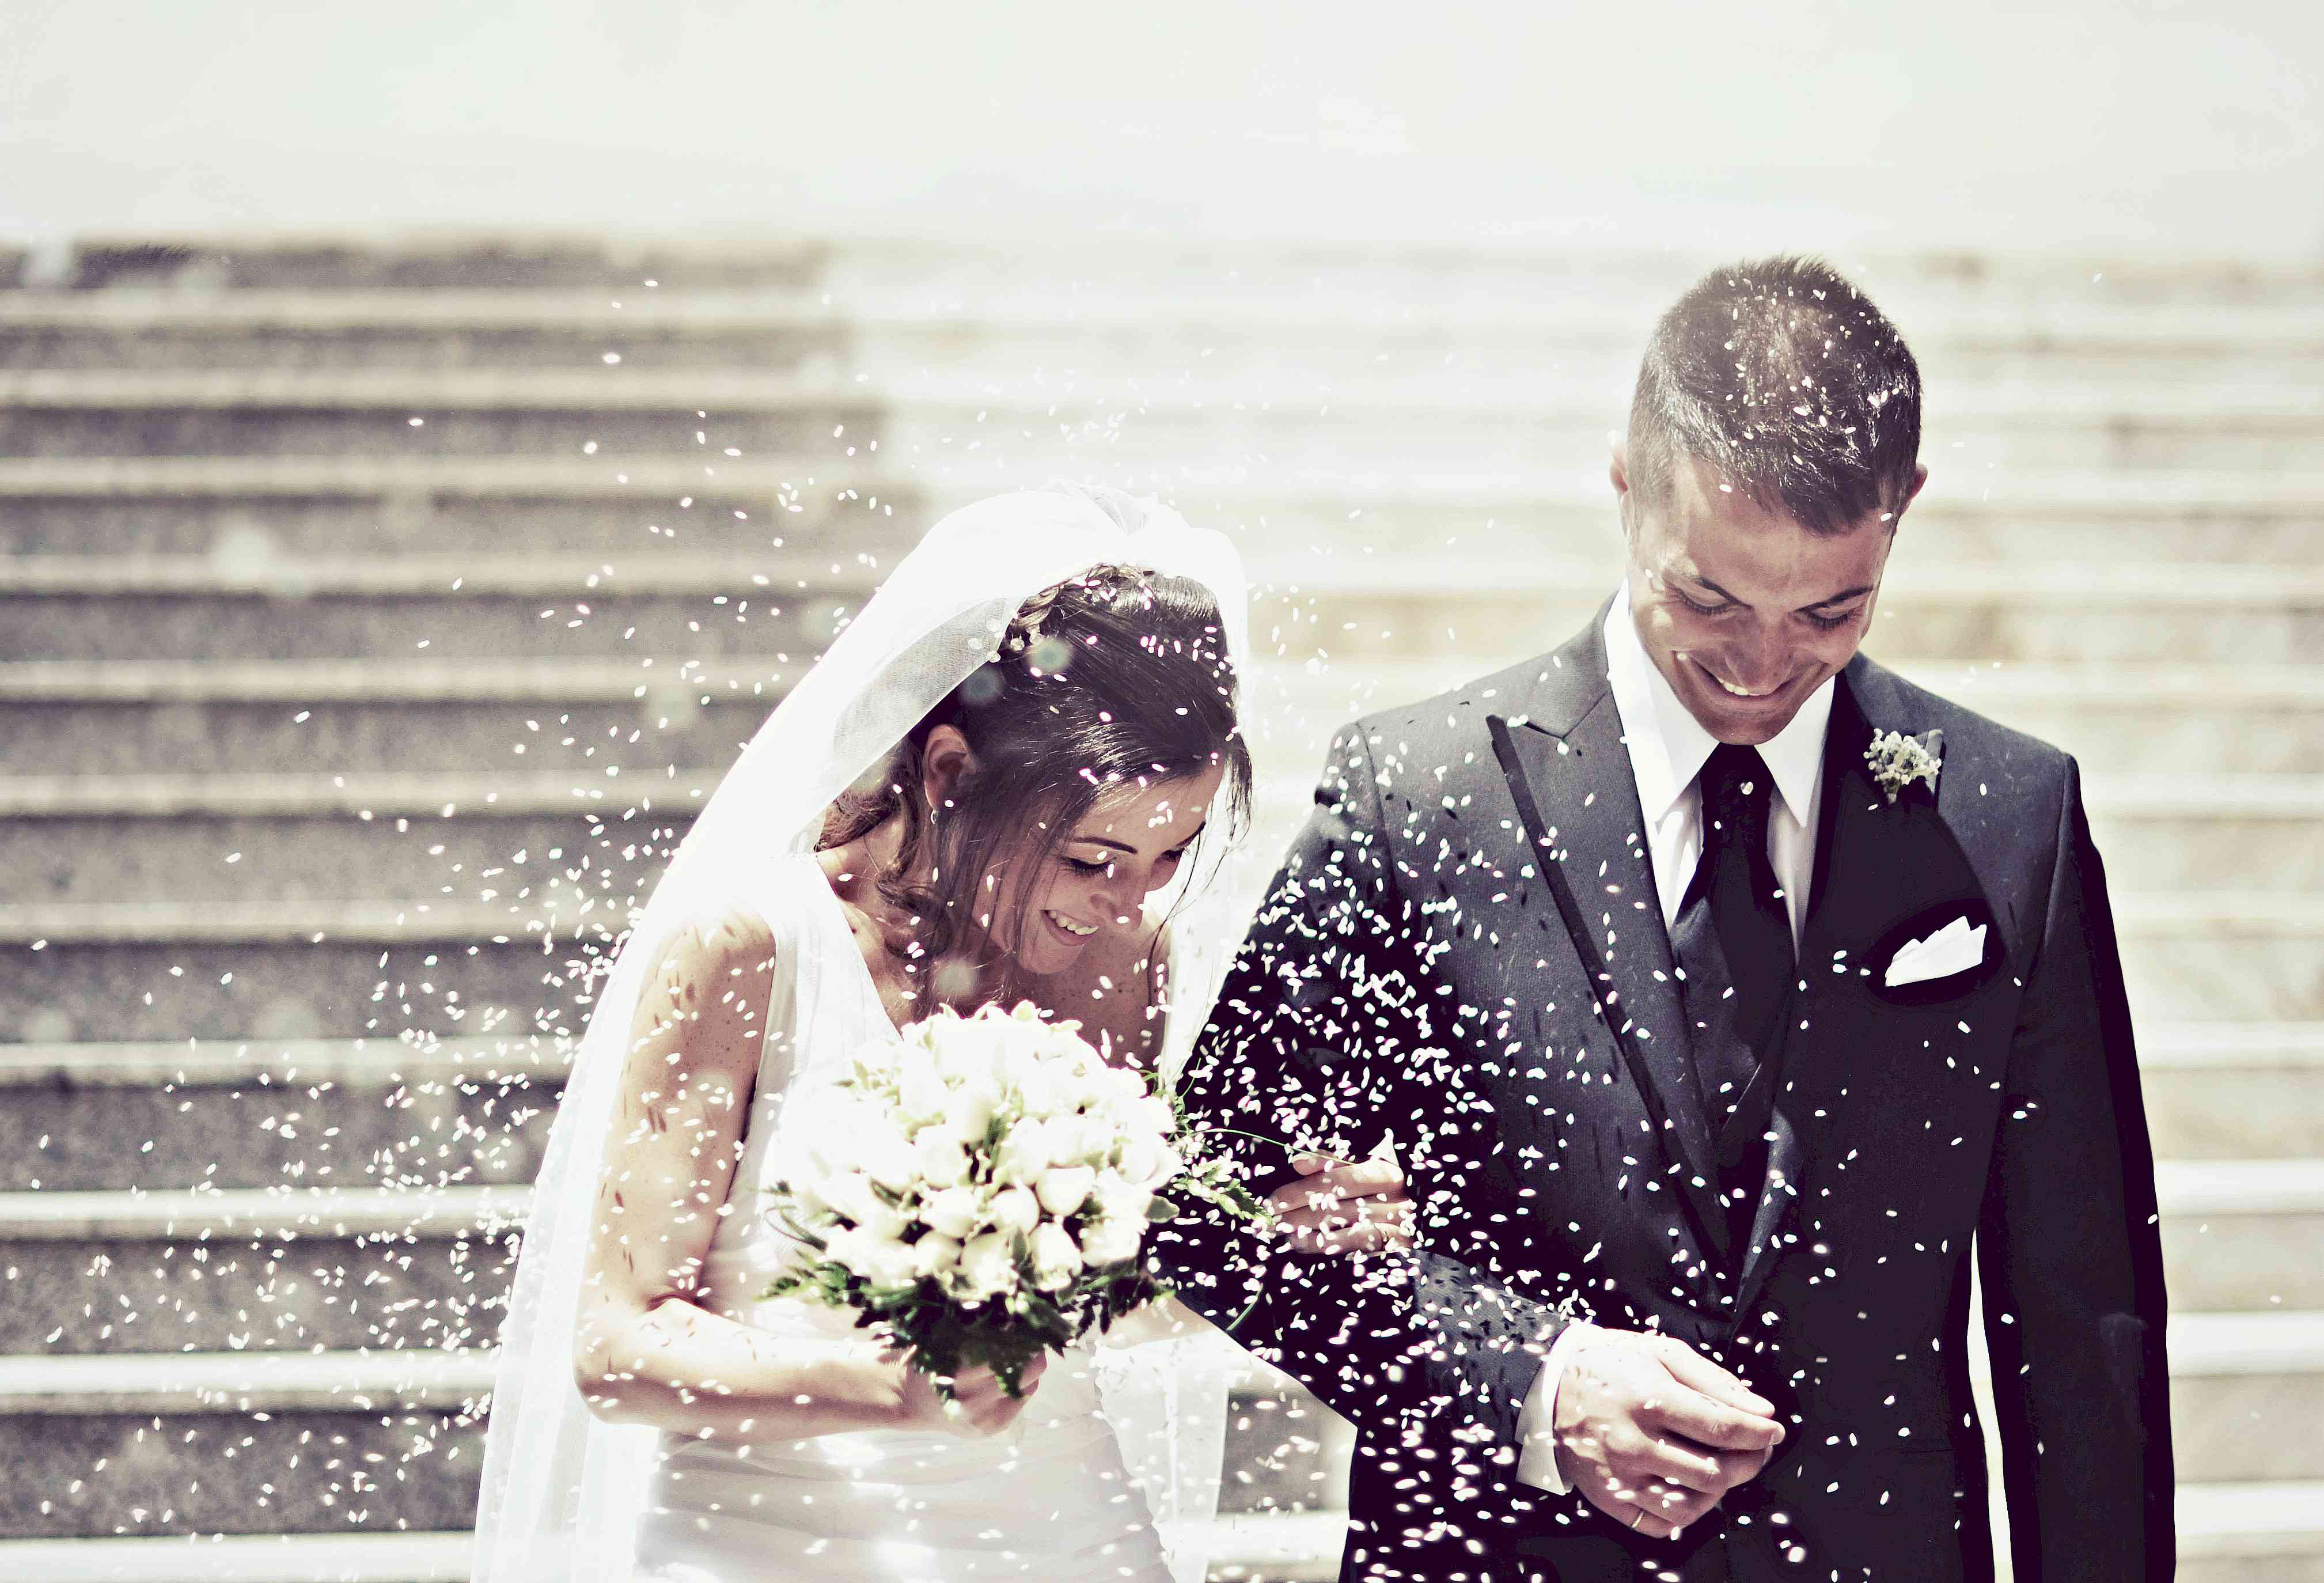 Newlyweds walking outside after ceremony with rice being thrown